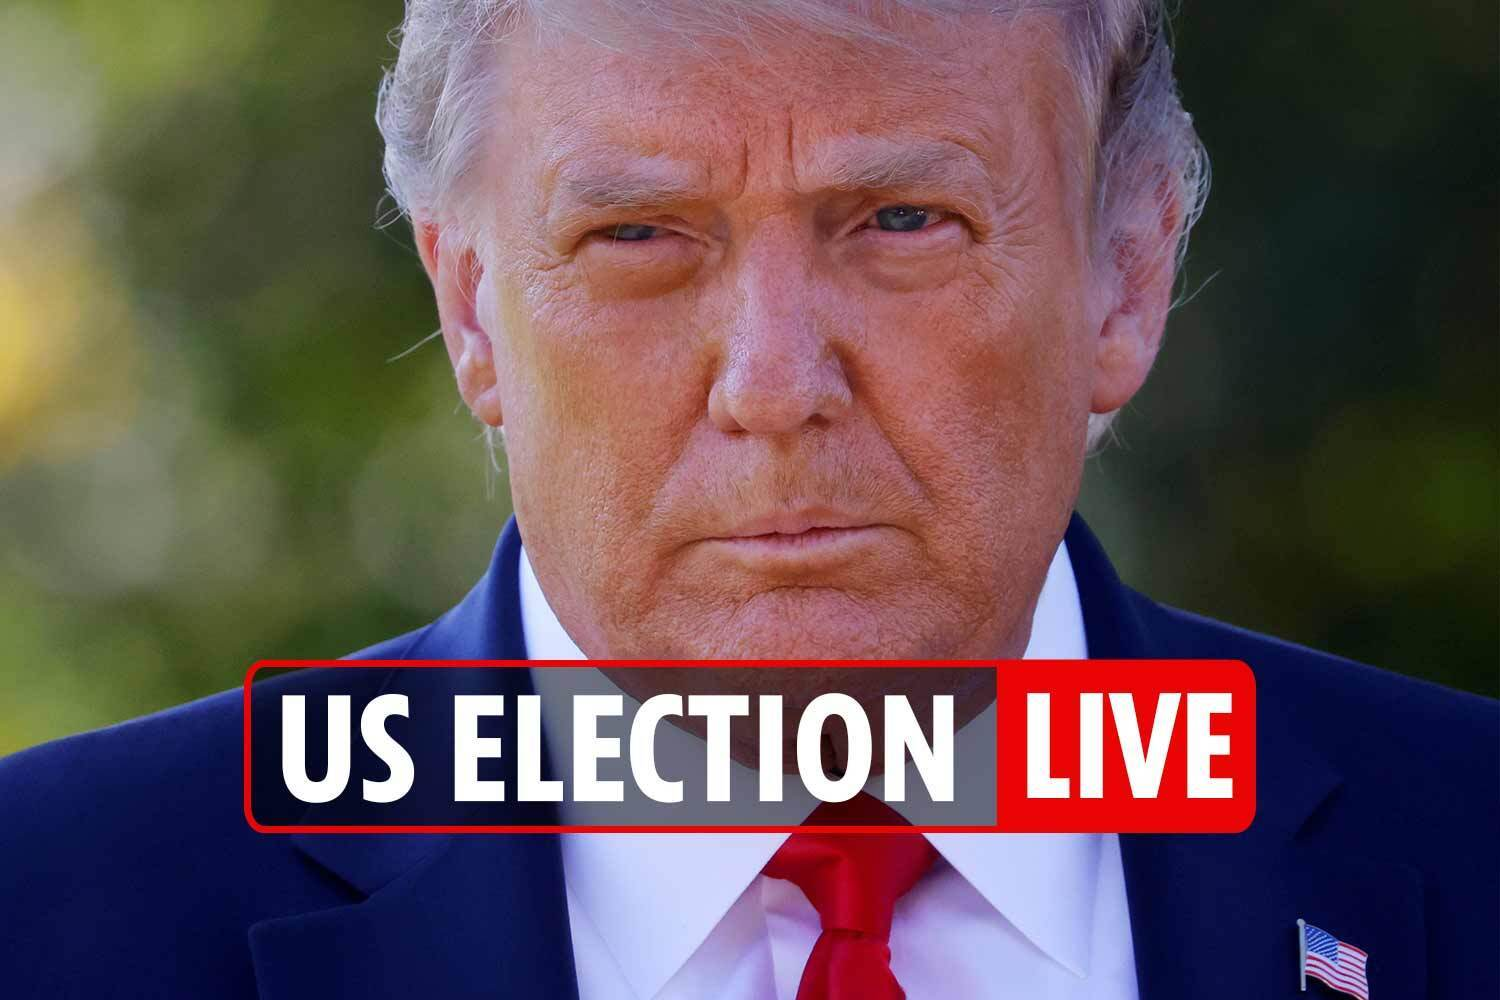 Donald Trump news – President heads to key battleground Nevada after branding Biden family a 'criminal enterprise'